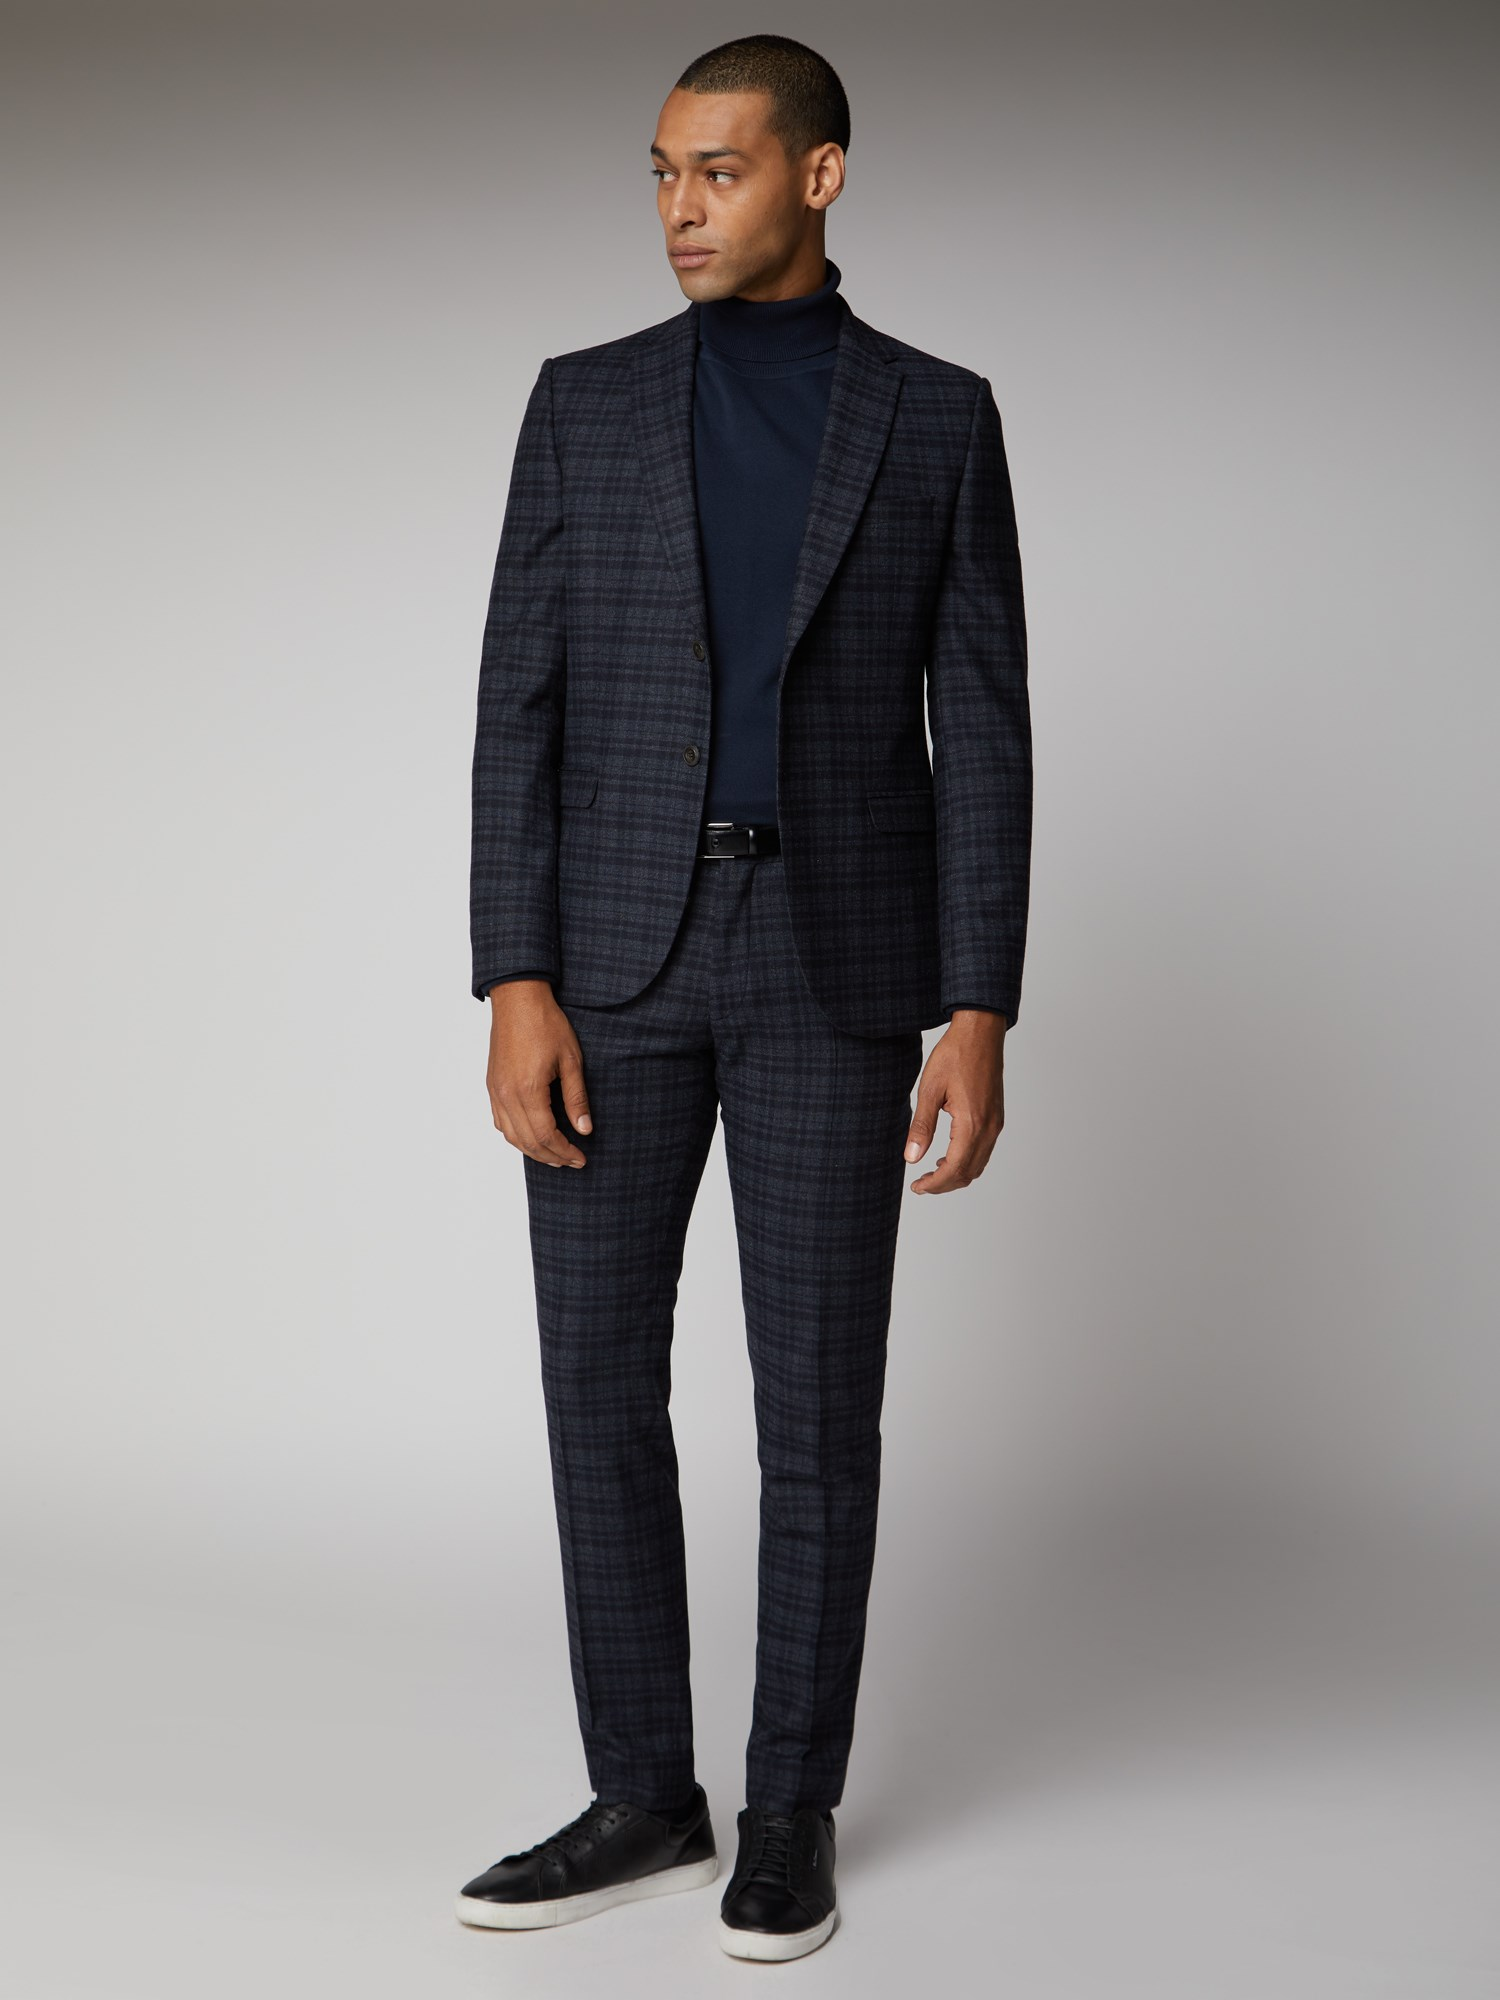 Navy Charcoal Check Suit